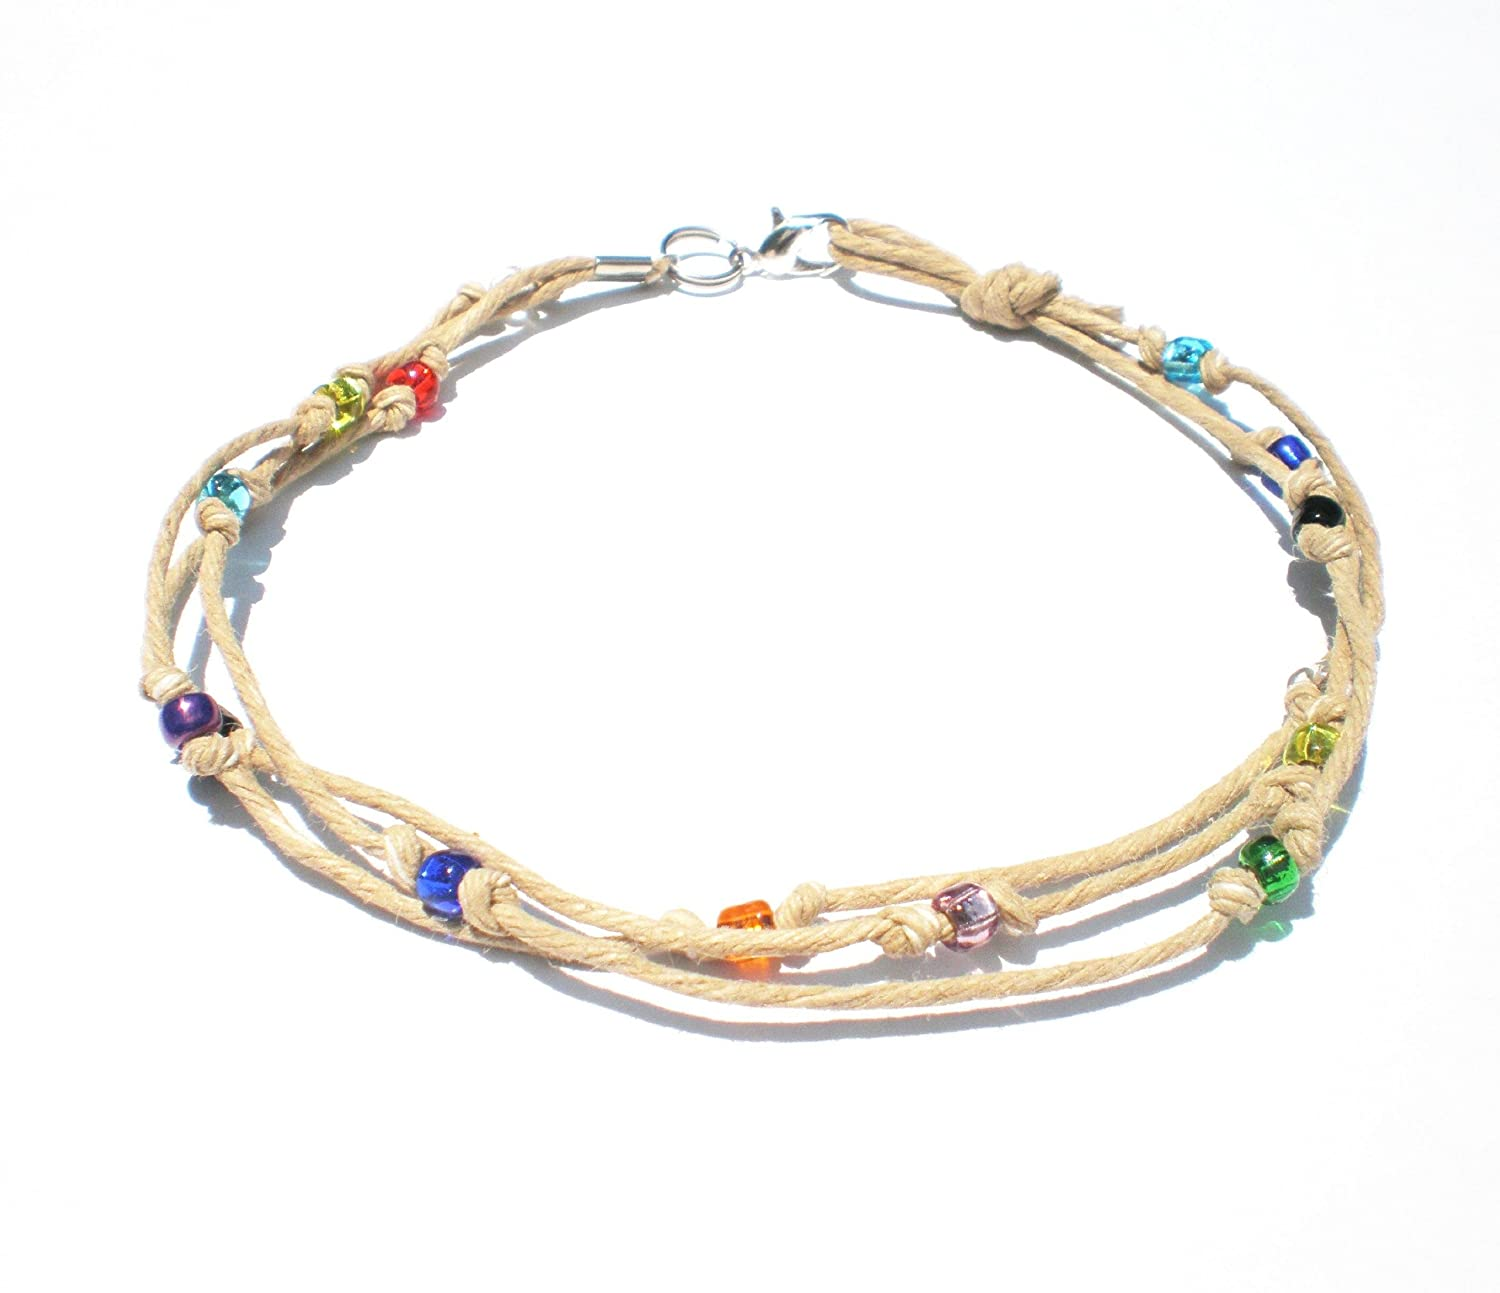 passion bracelets ibiza archangels products ibbll y bracelet yellow multi blue string anklet